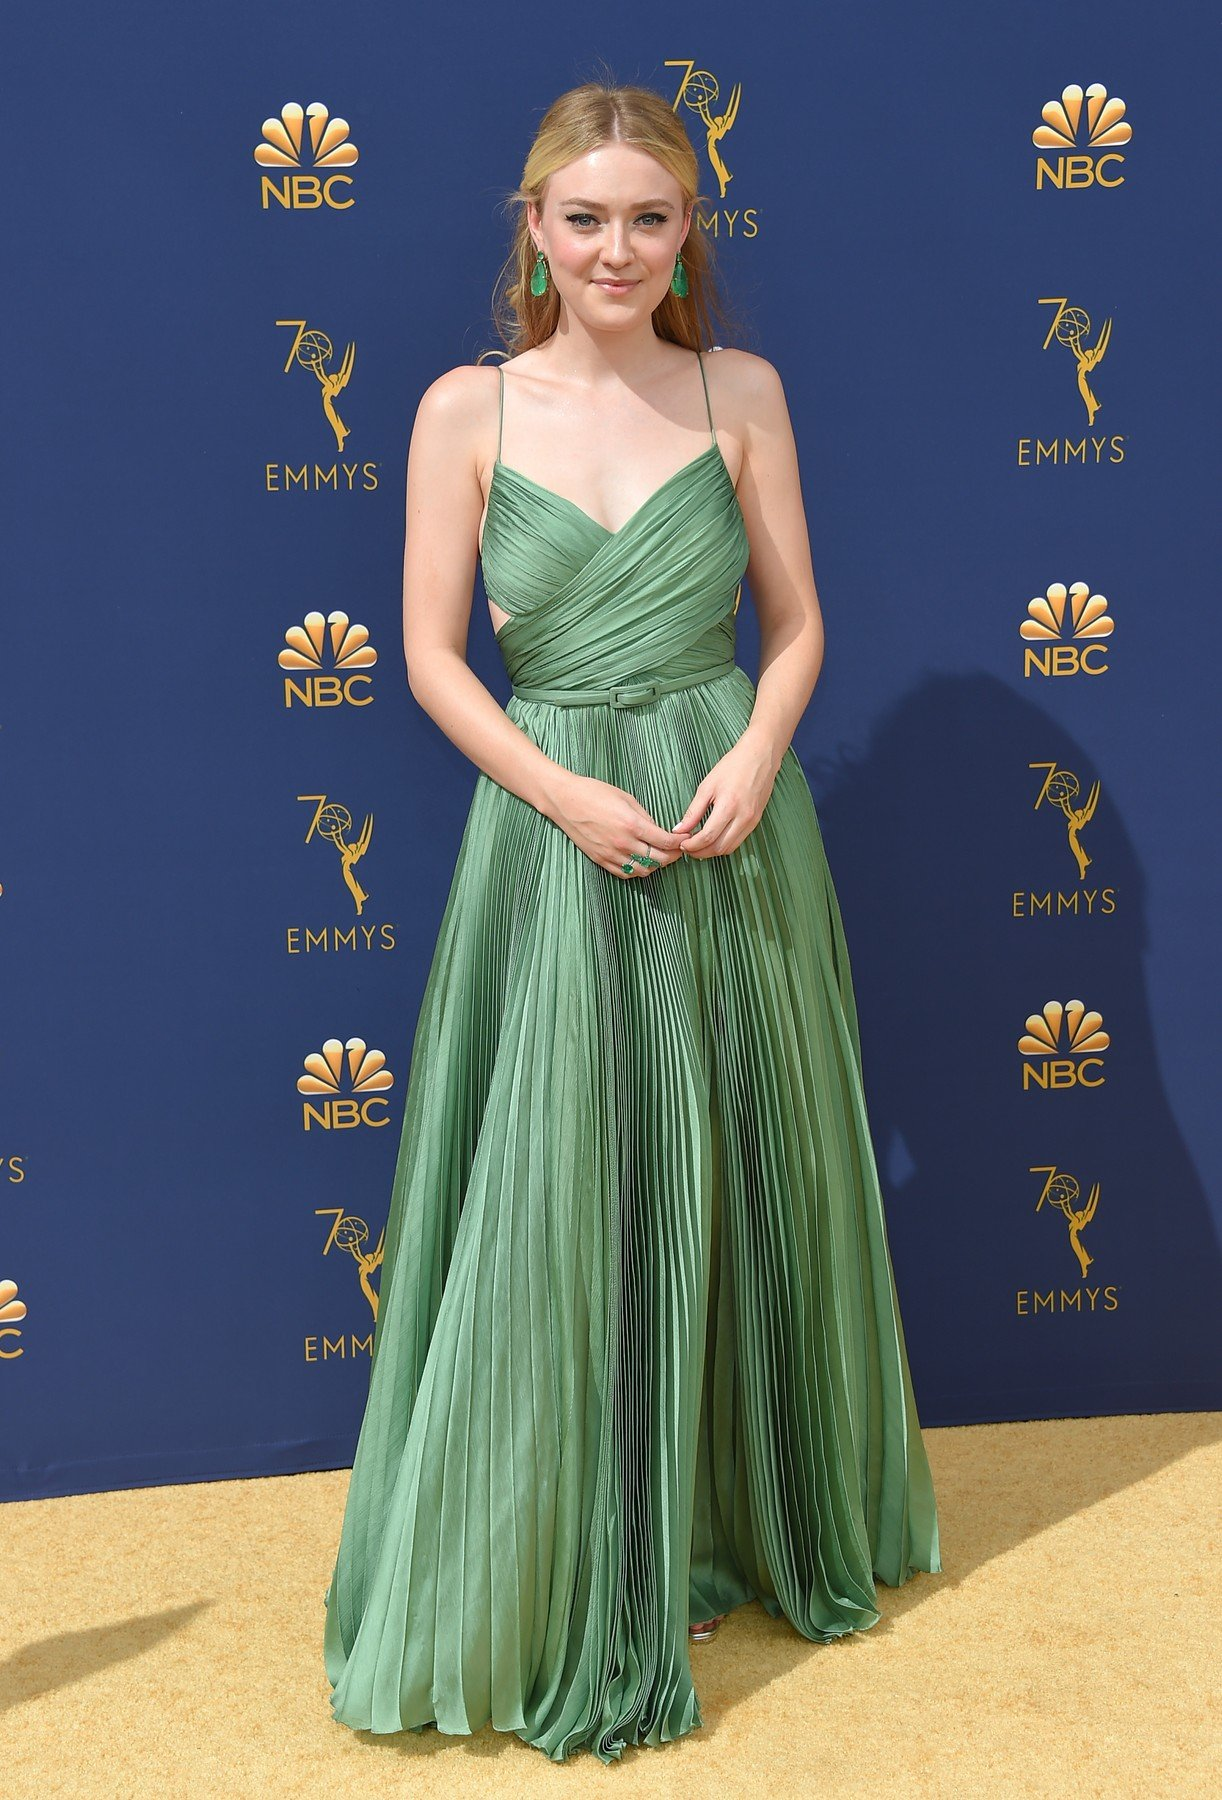 70th Primetime Emmy Awards held at Microsoft Theatre L.A. 17 Sep 2018, Image: 387173879, License: Rights-managed, Restrictions: World Rights, Model Release: no, Credit line: Profimedia, Mega Agency